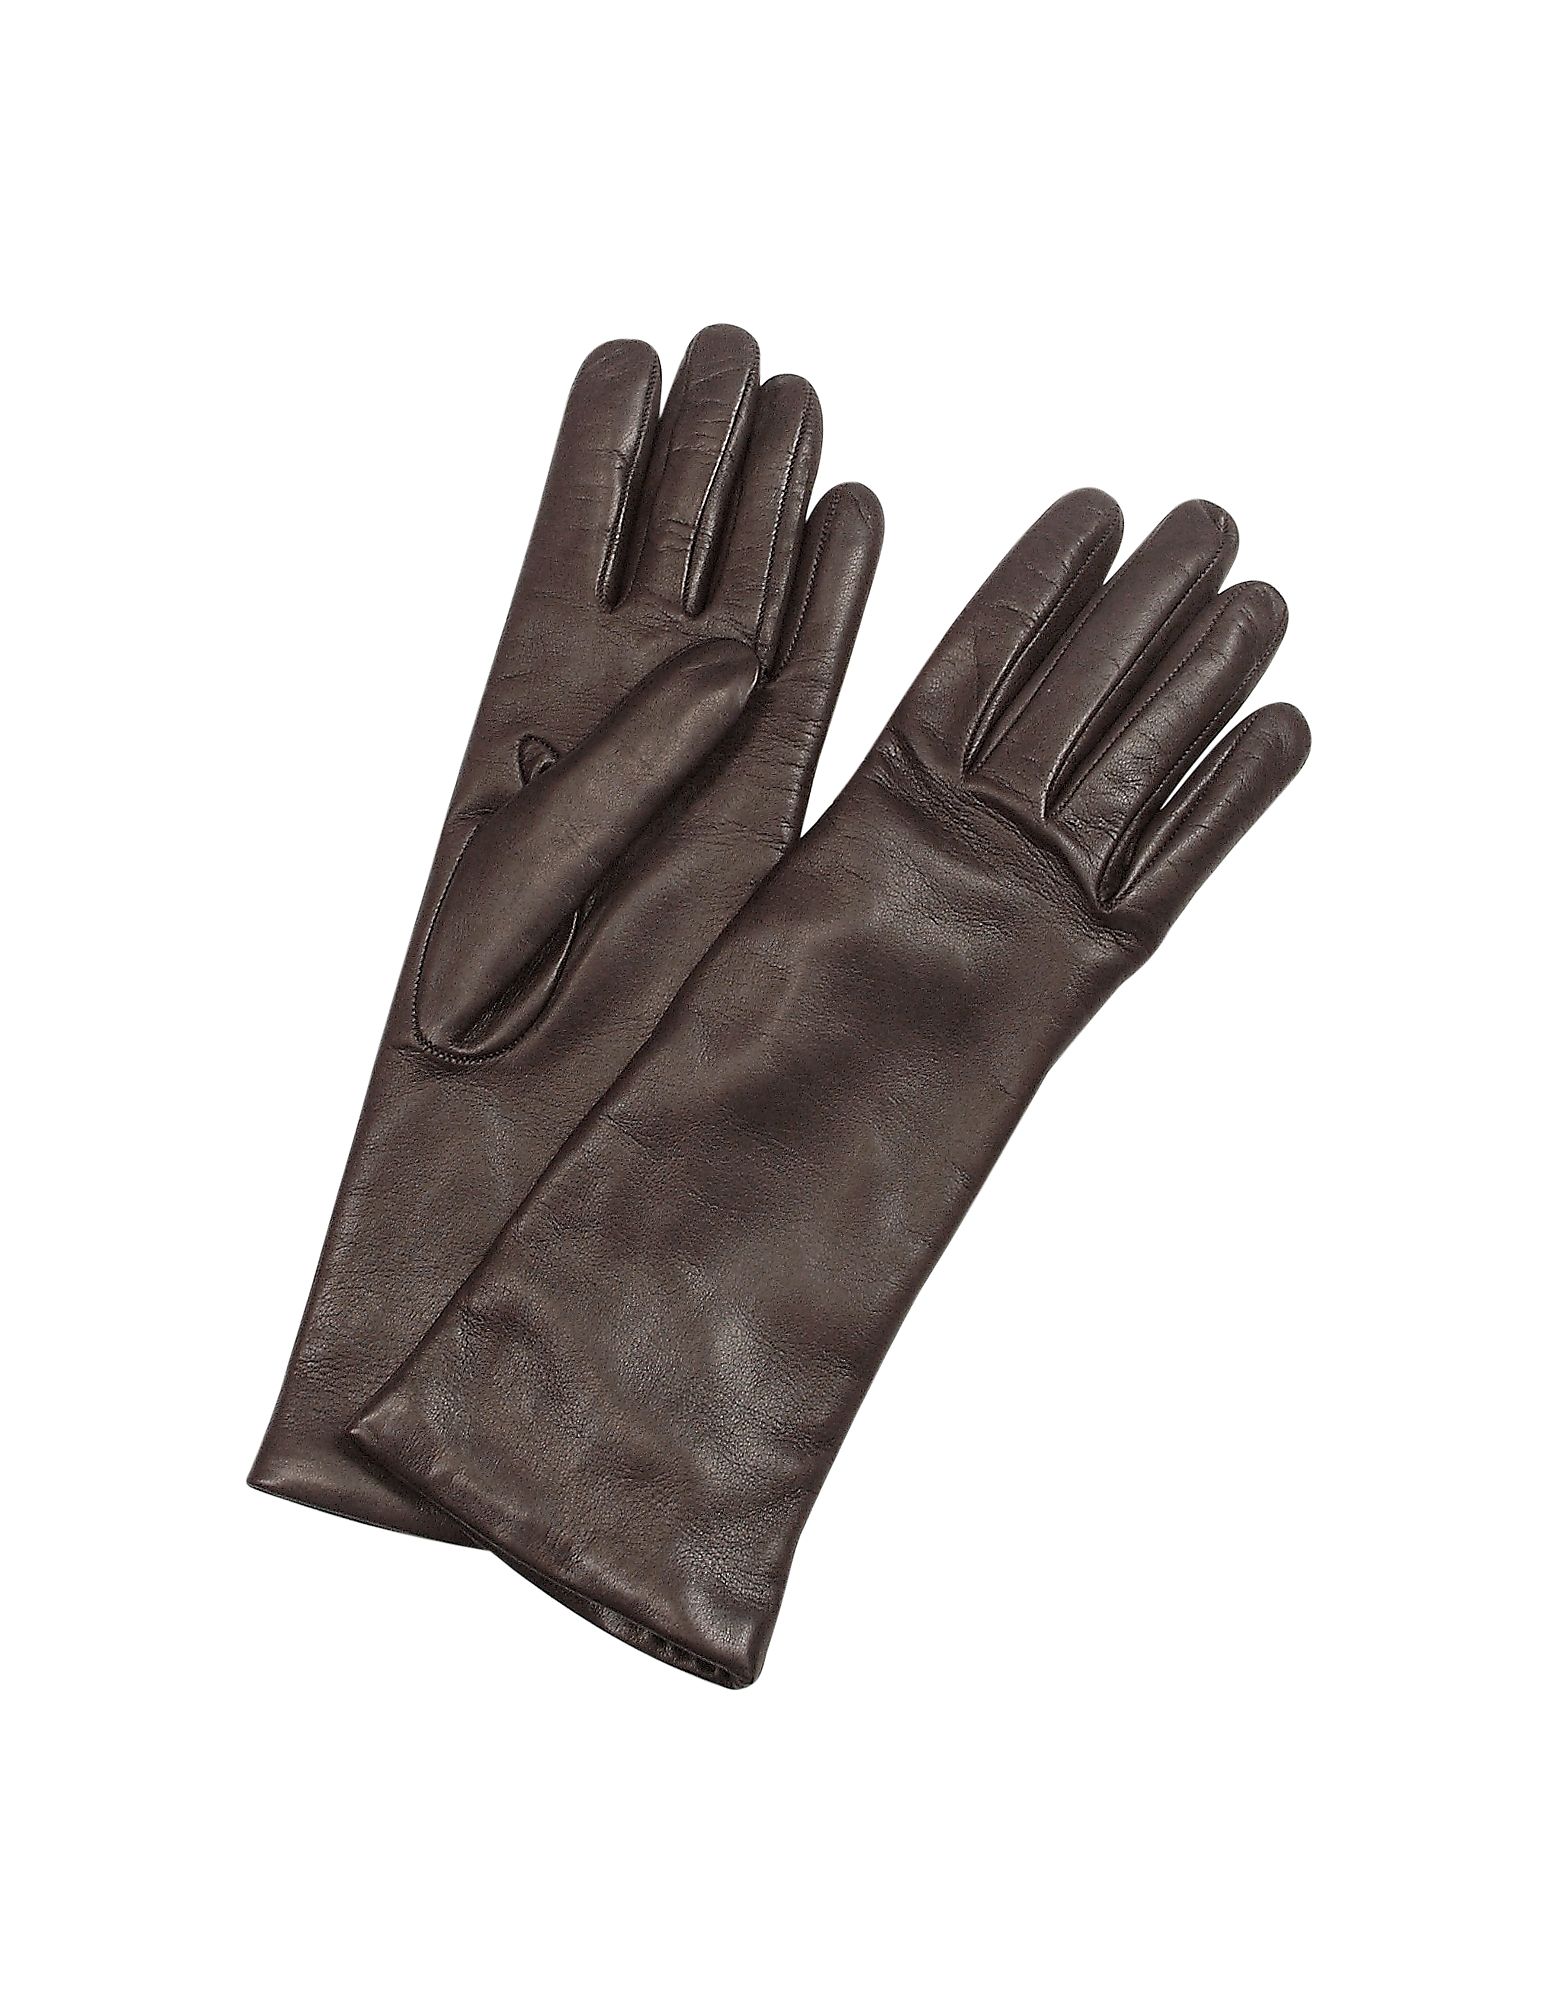 Forzieri Women's Gloves, Women's Cashmere Lined Dark Brown Italian Leather Long Gloves